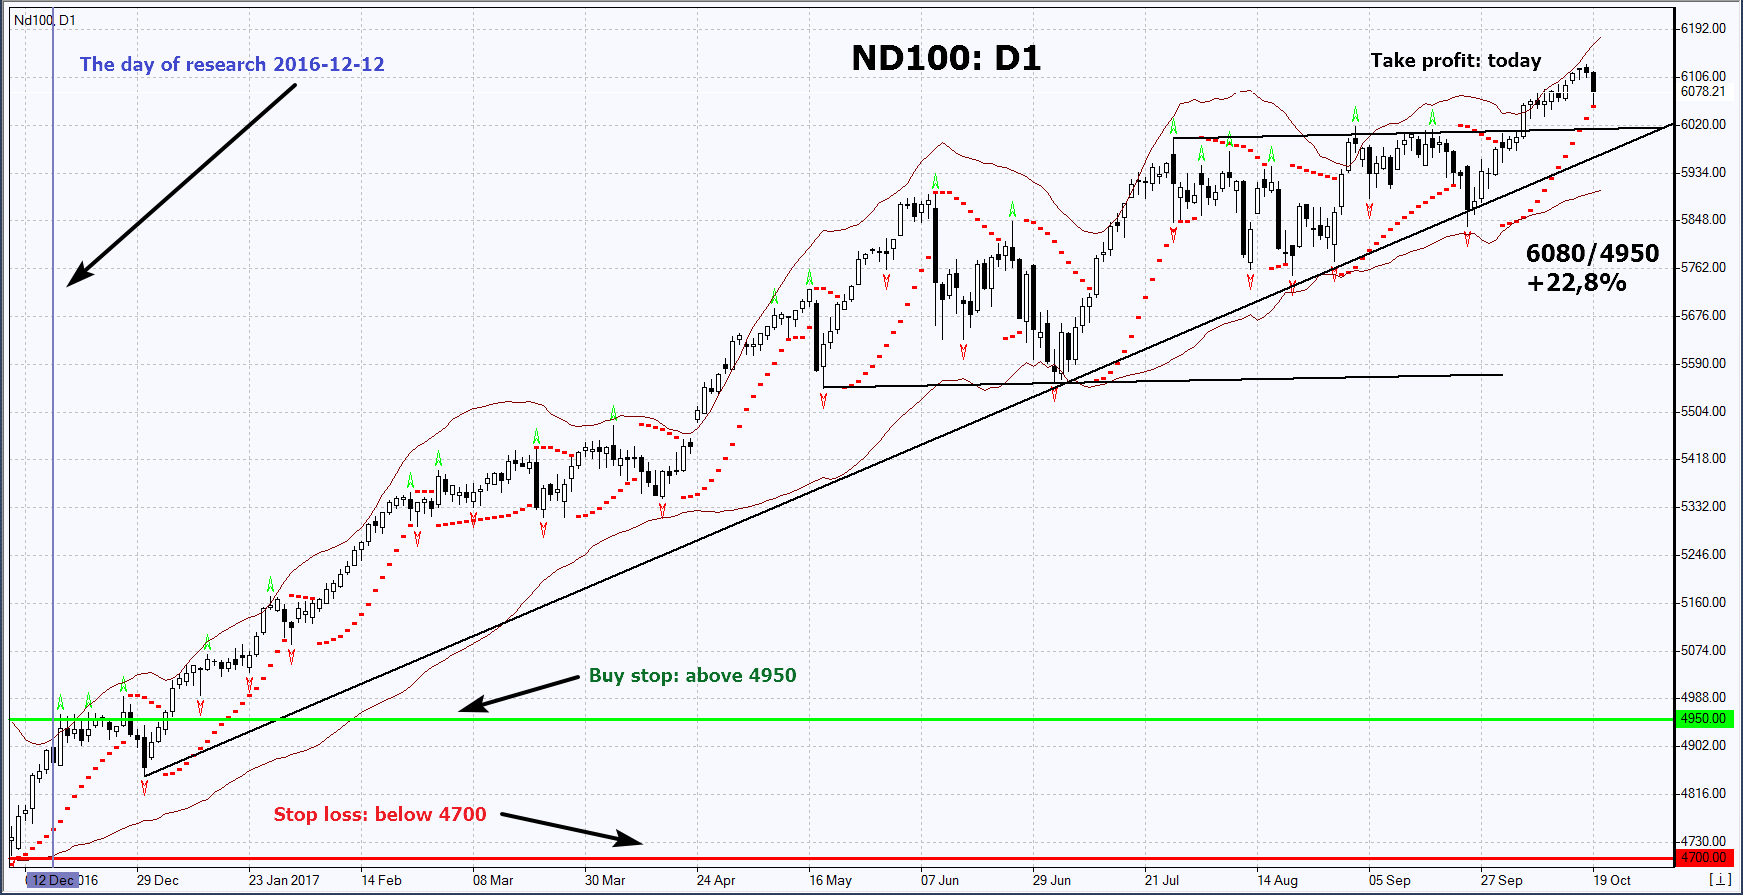 Retrospective Nasdaq 100 falls behind in growth | Technical Analysis